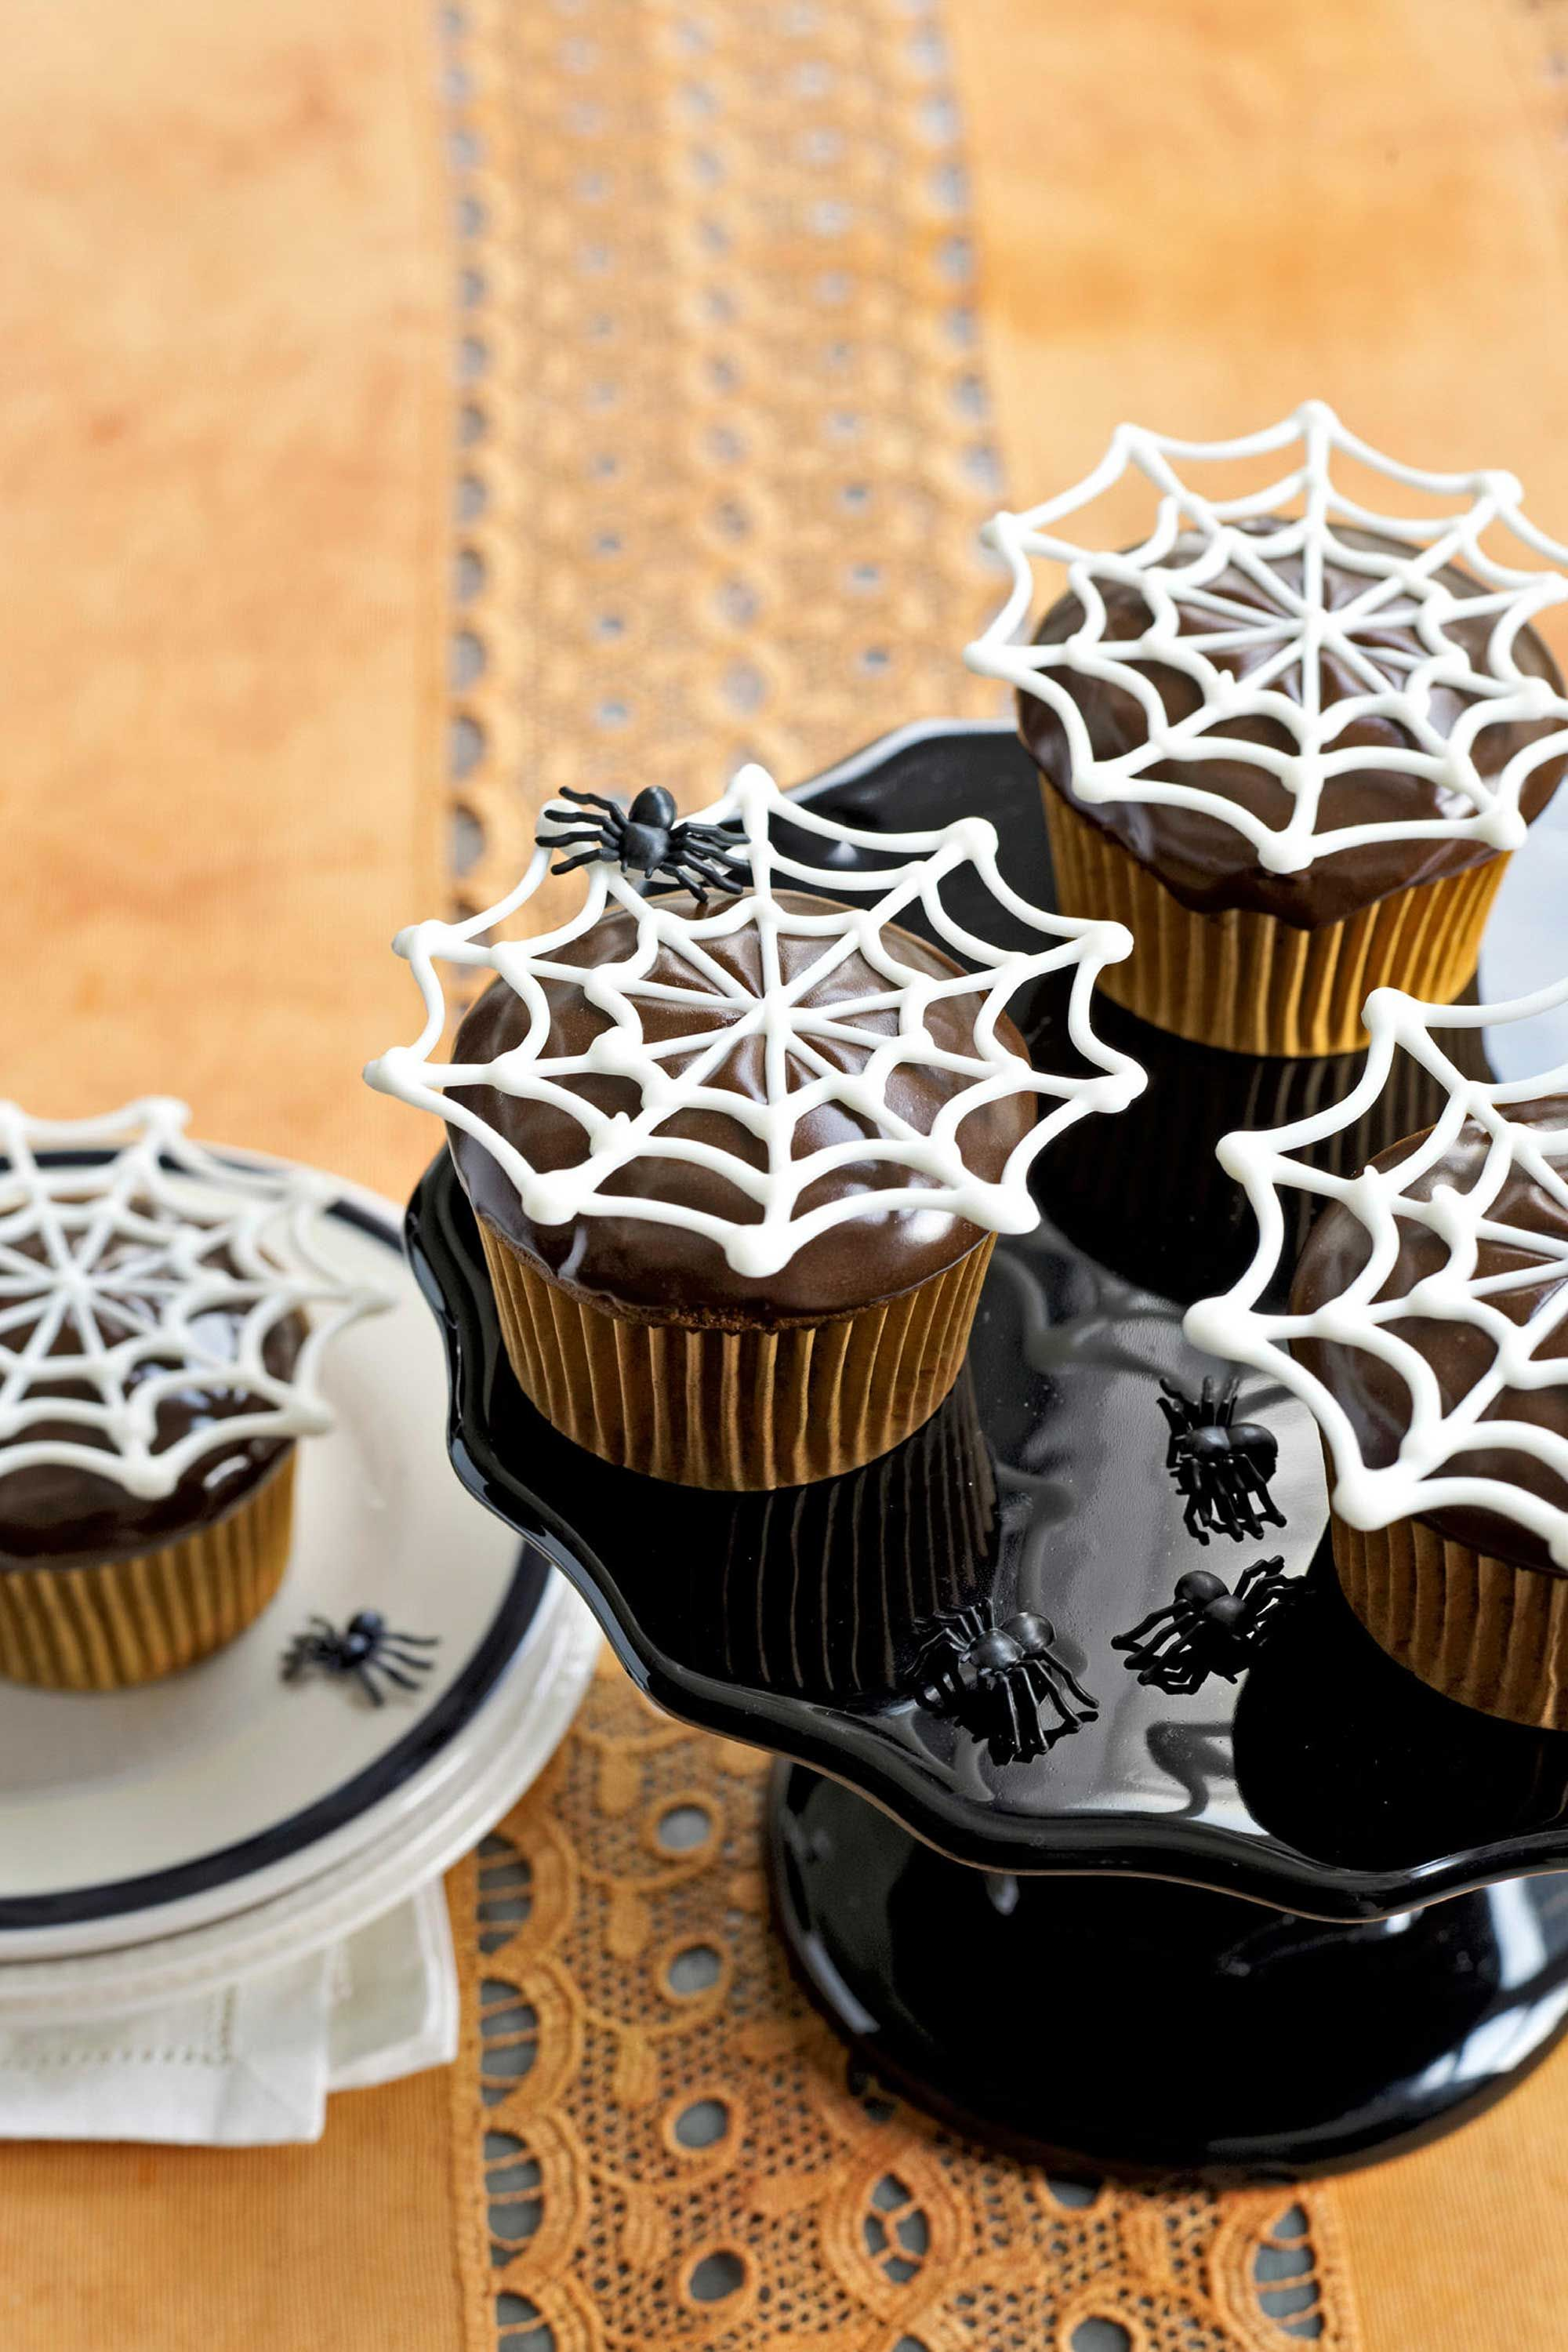 country living itsy bitsy spiderweb halloween cupcakes template comes w recipe too